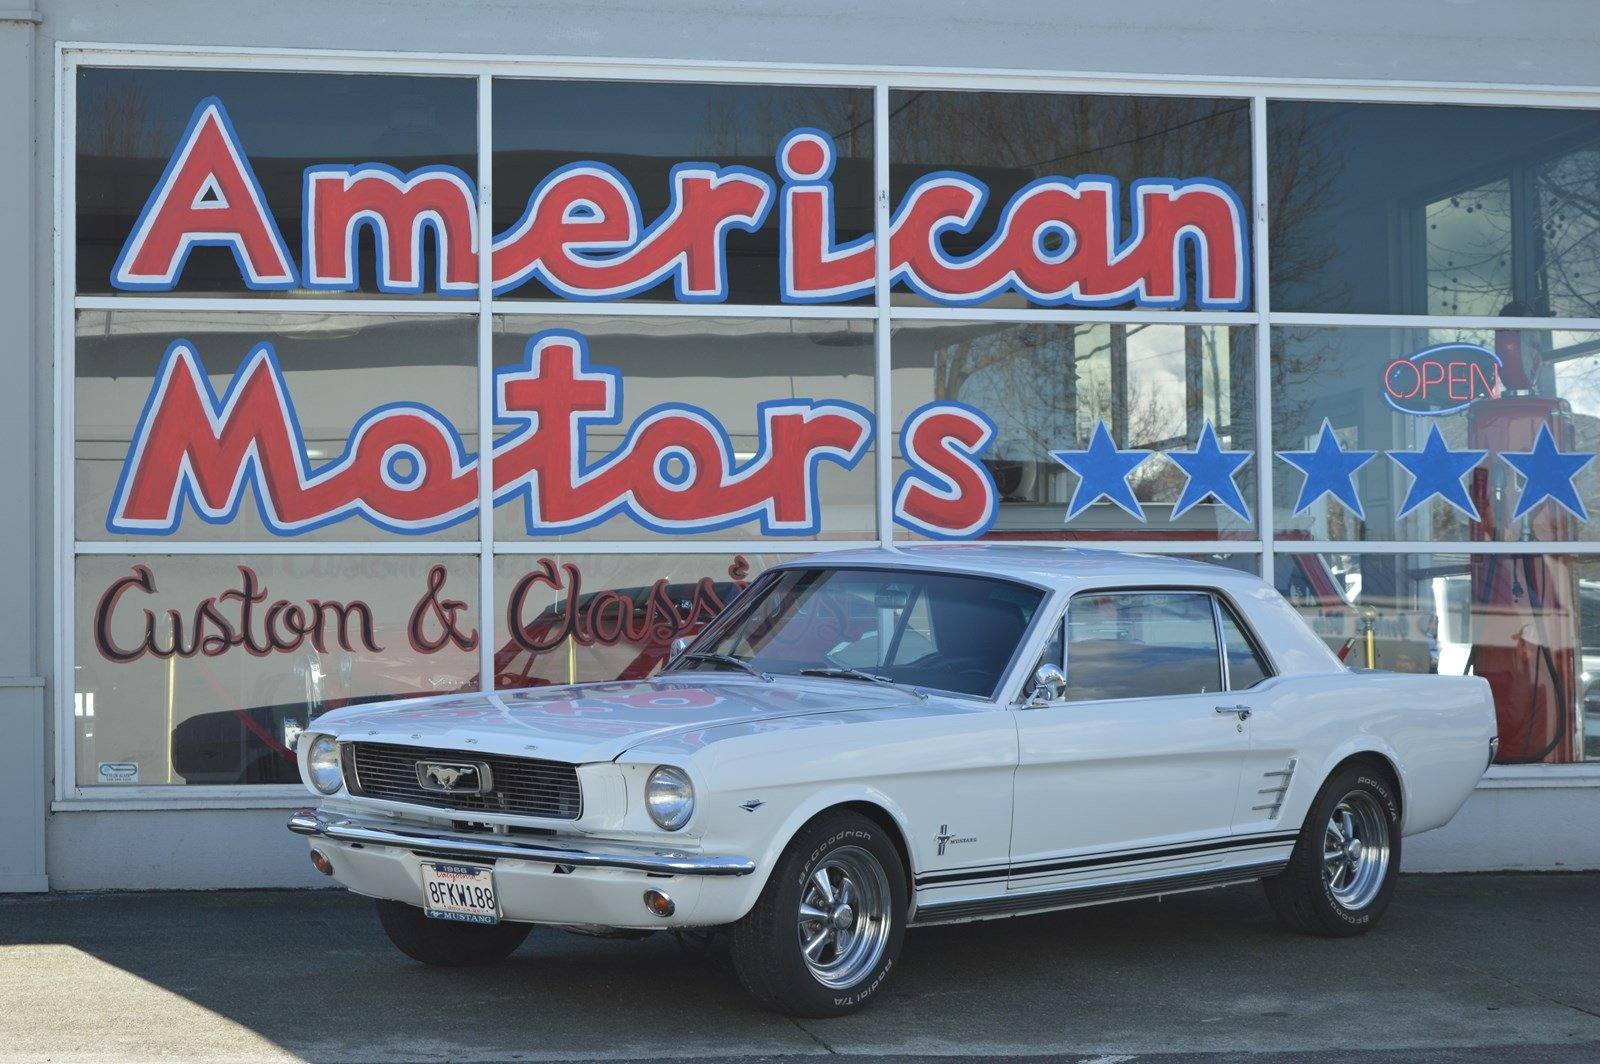 Pre owned 1966 ford mustang c code 289 restored great condition runs excellent in san jose am4213 stevens creek toyota